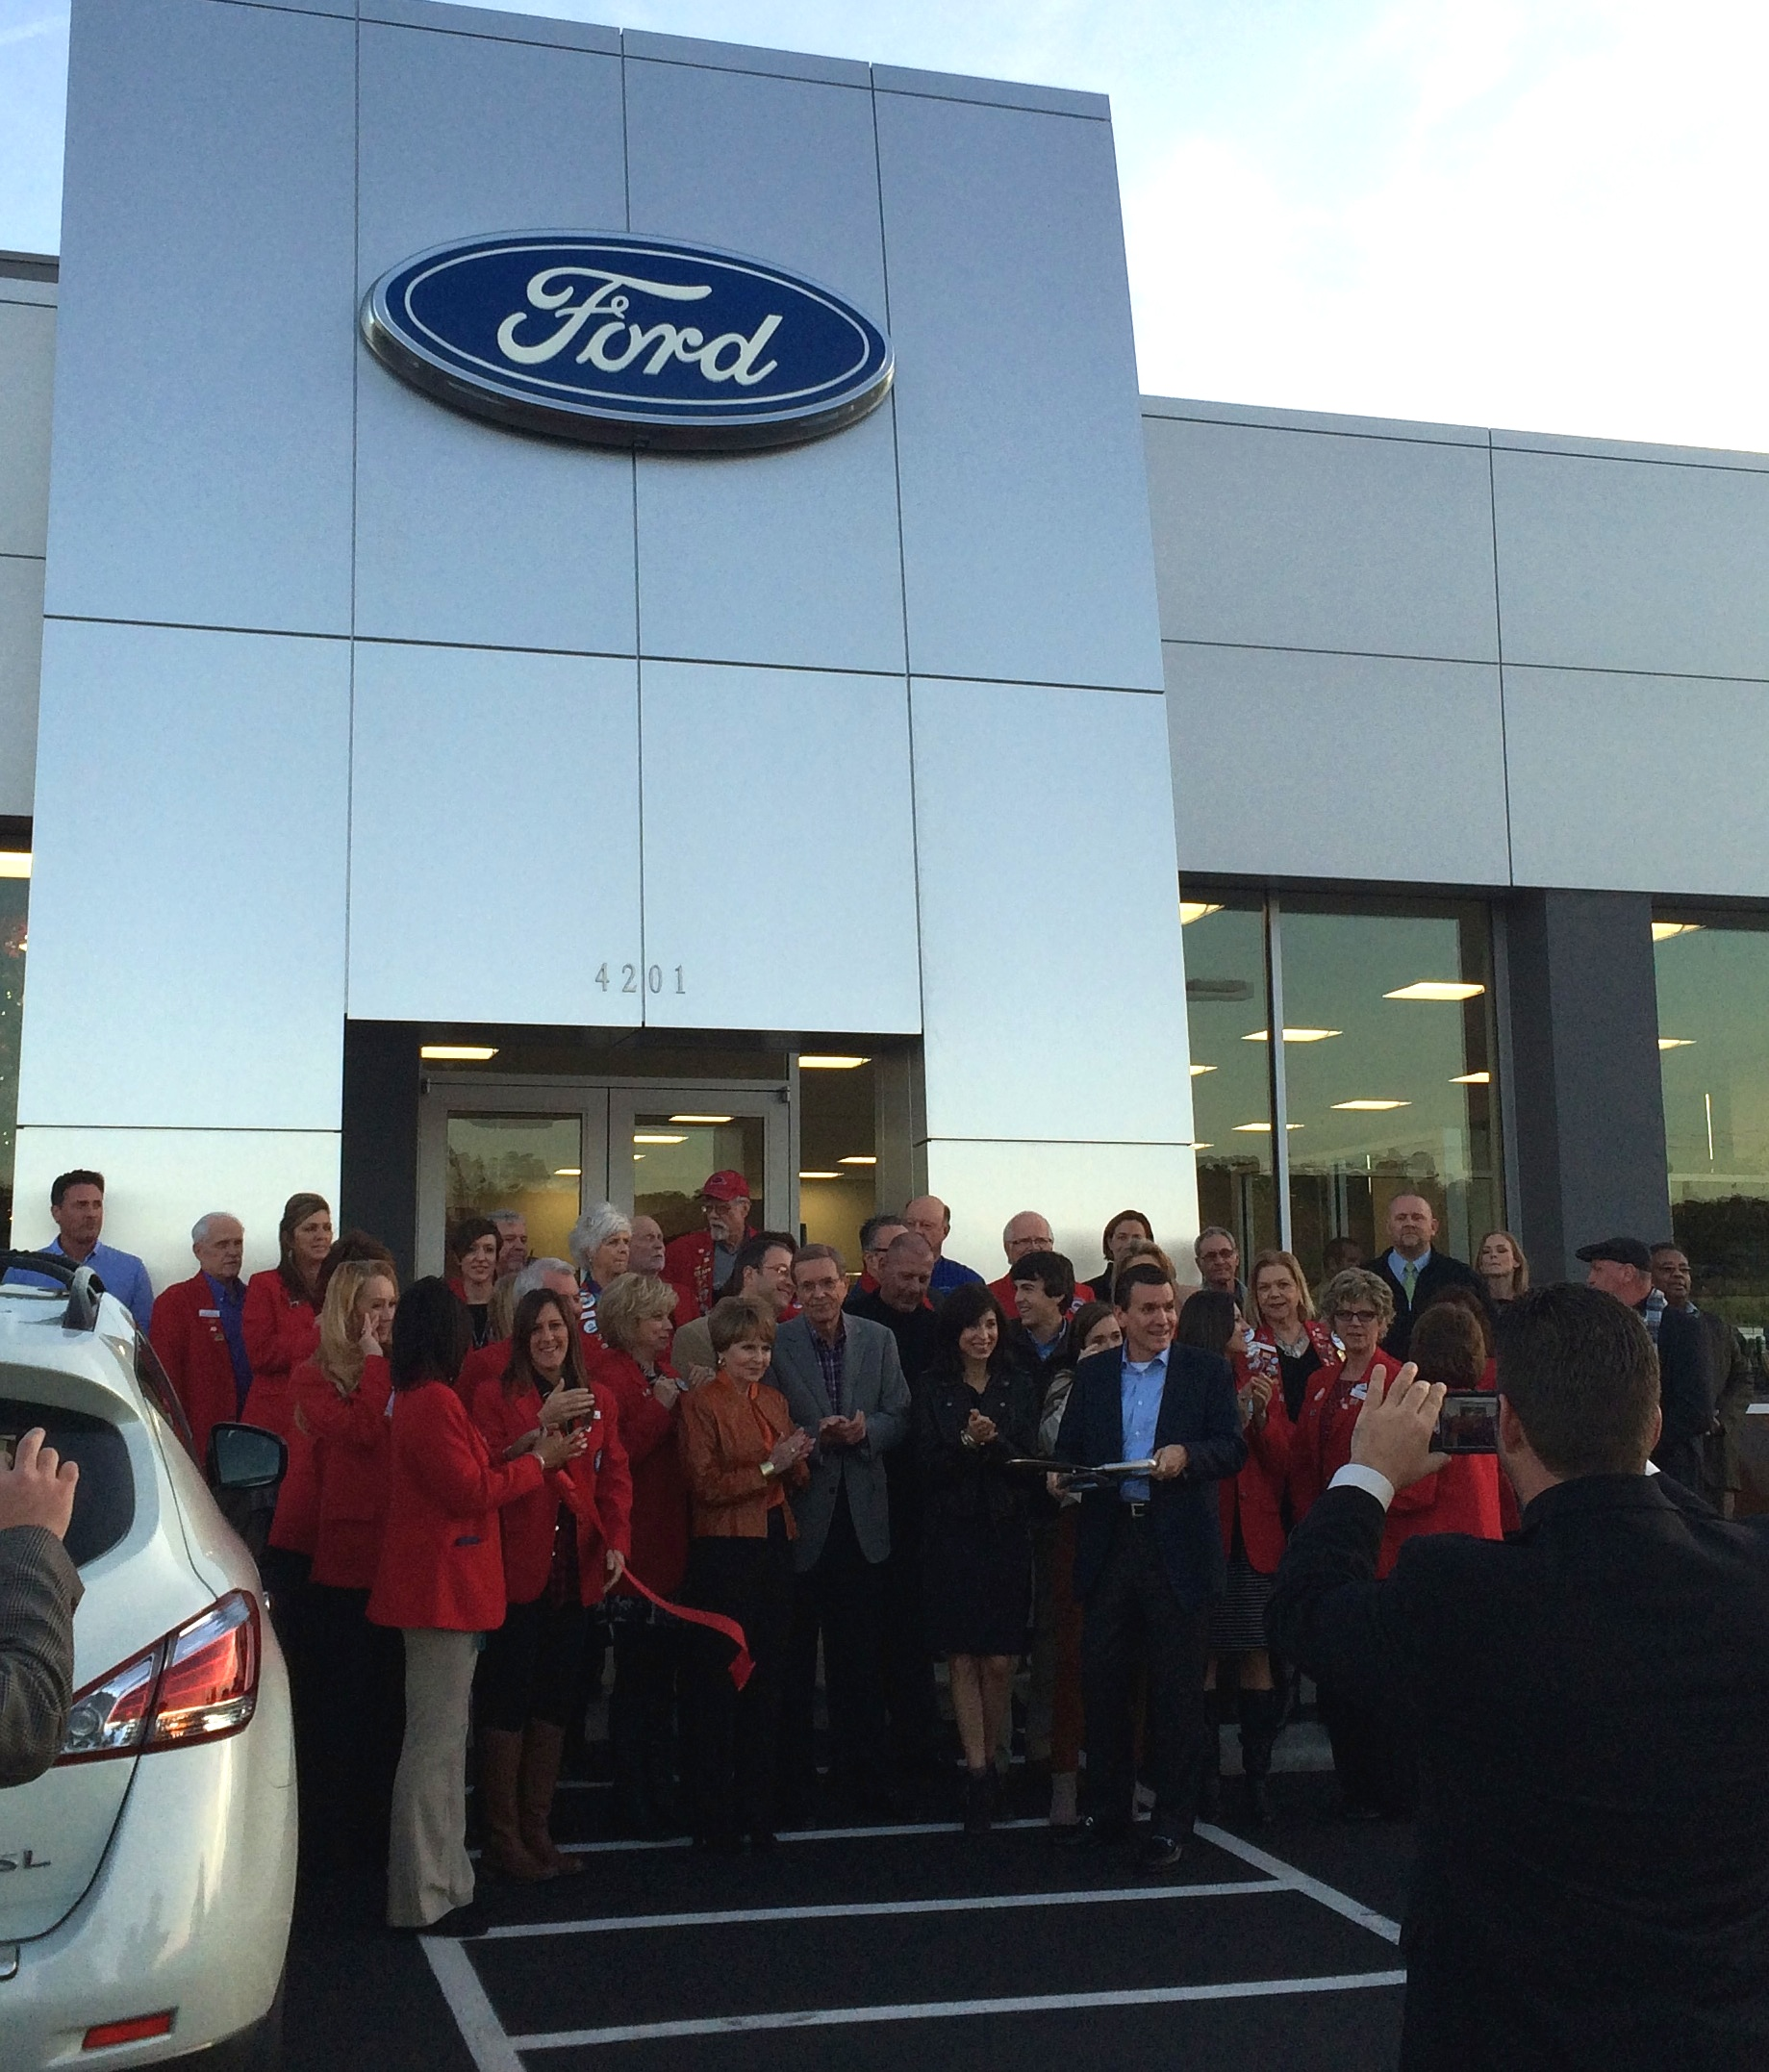 Riser Ford Ribbon Cutting | Harco Full Service General Contractors Arkansas : riser ford used cars - markmcfarlin.com